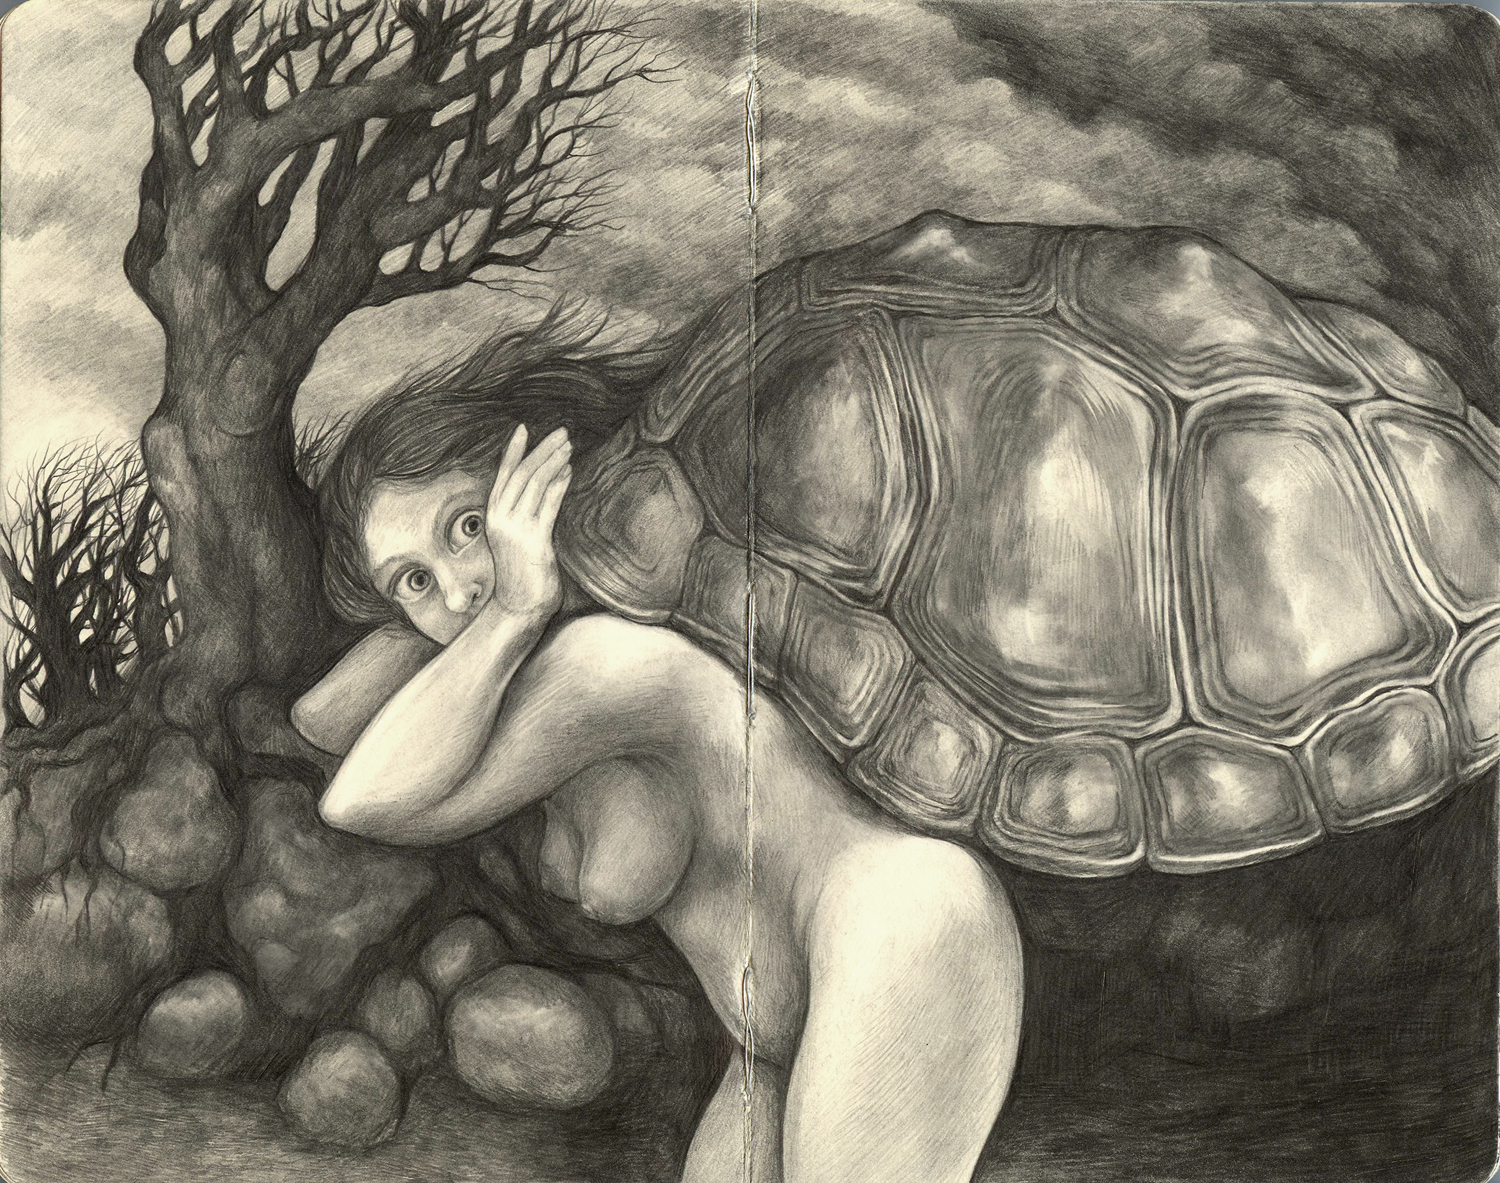 Strange Tales from My Little Black Book #12: The Weight of the Carapace